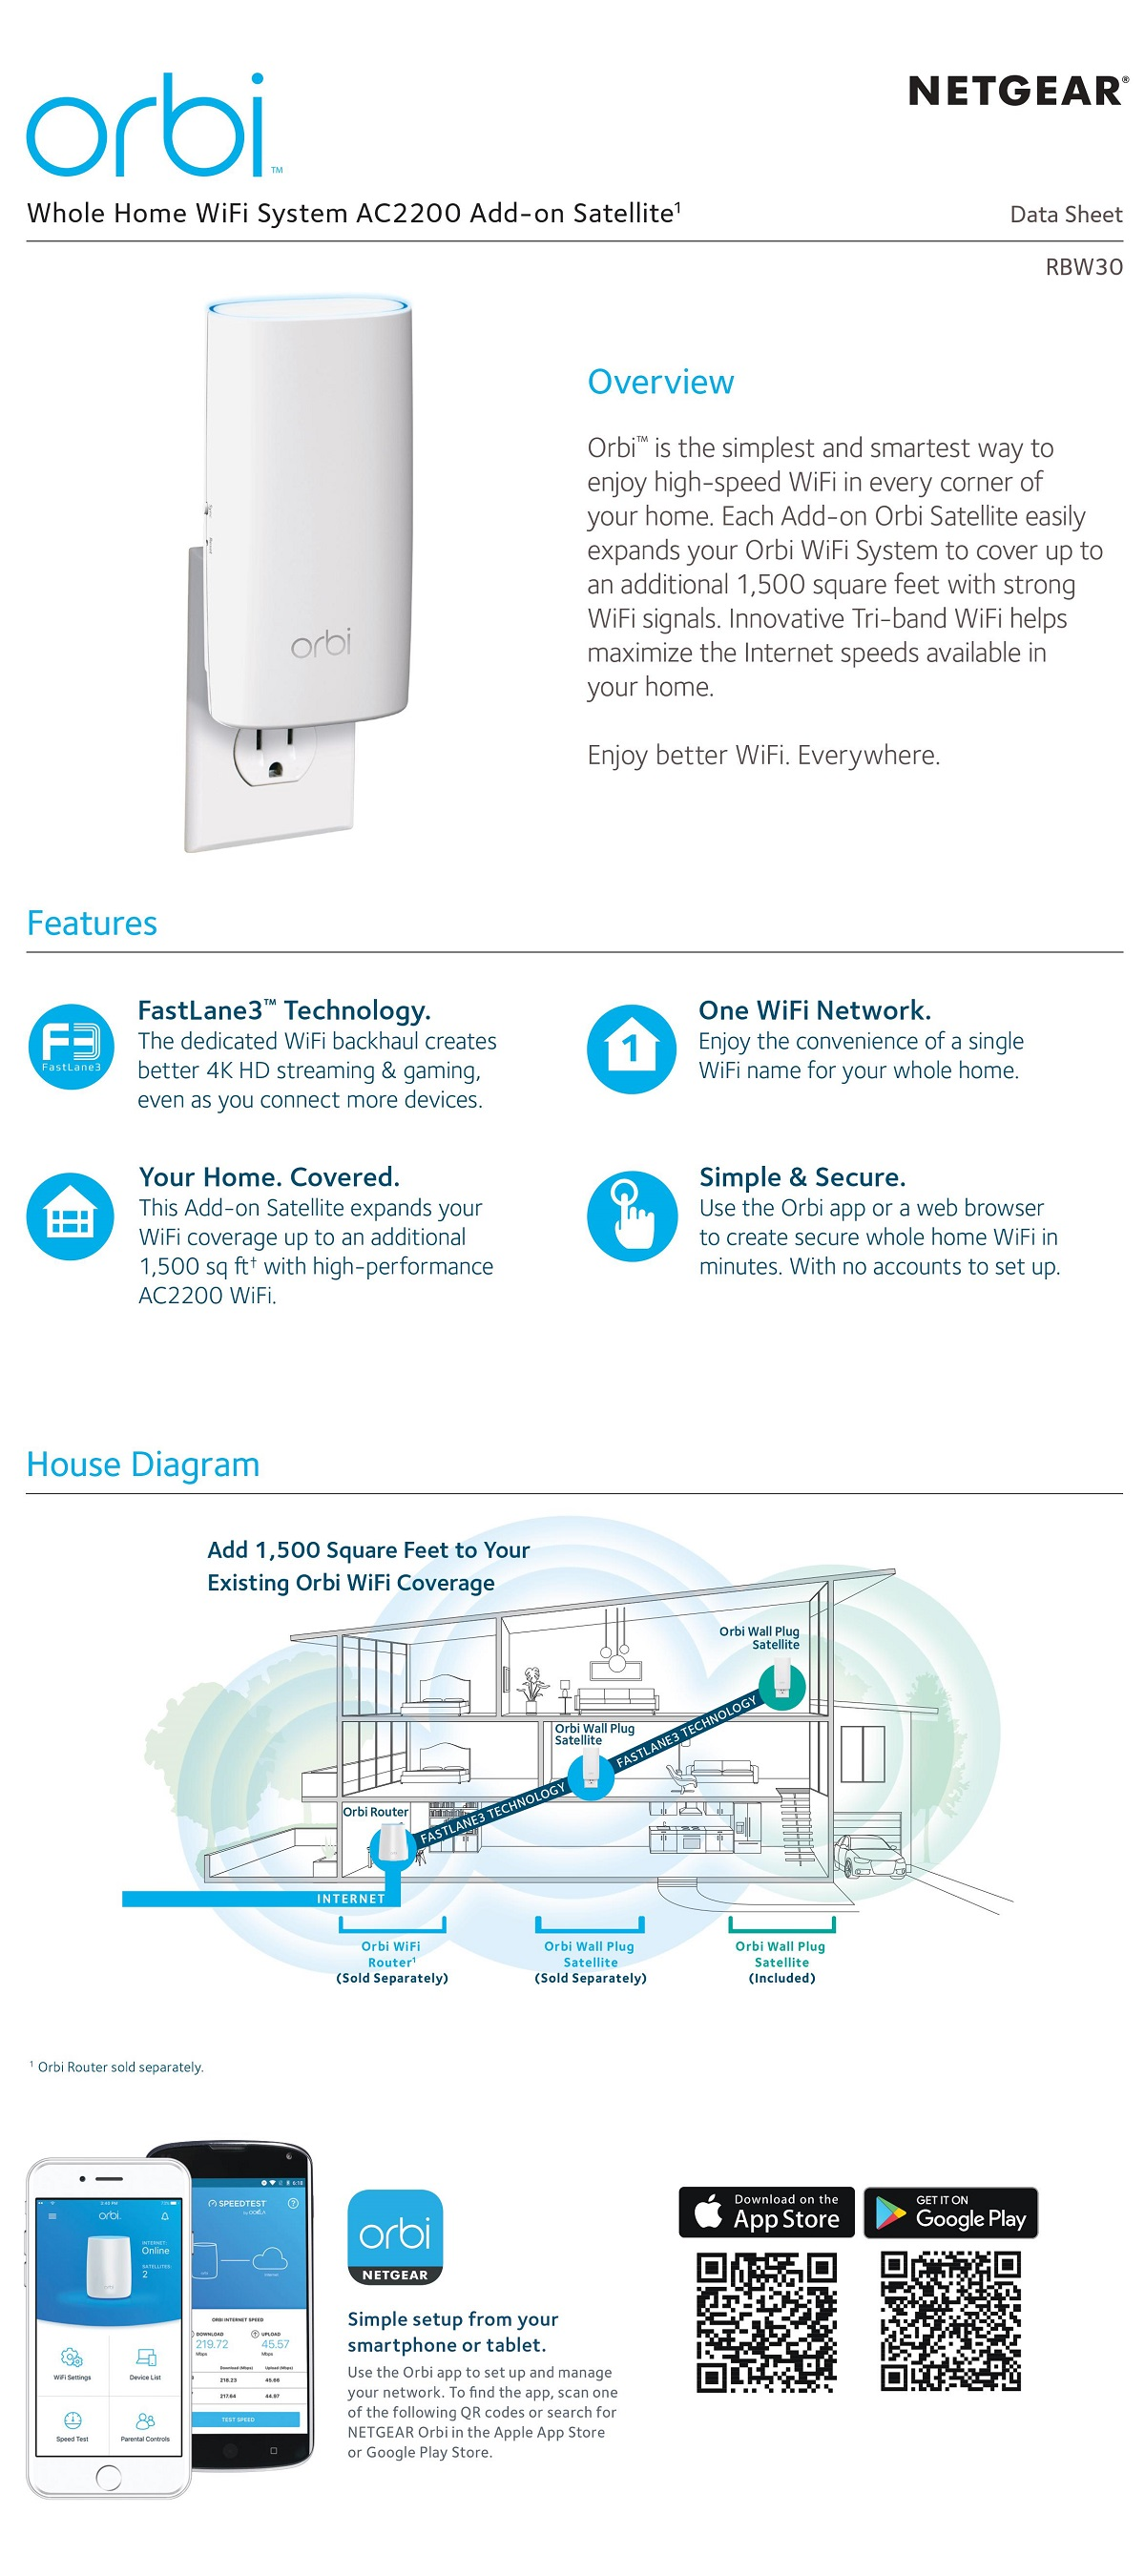 Details about Netgear Orbi RBW30 Wall-Plug Satellite Whole Home WiFi System  AC2200